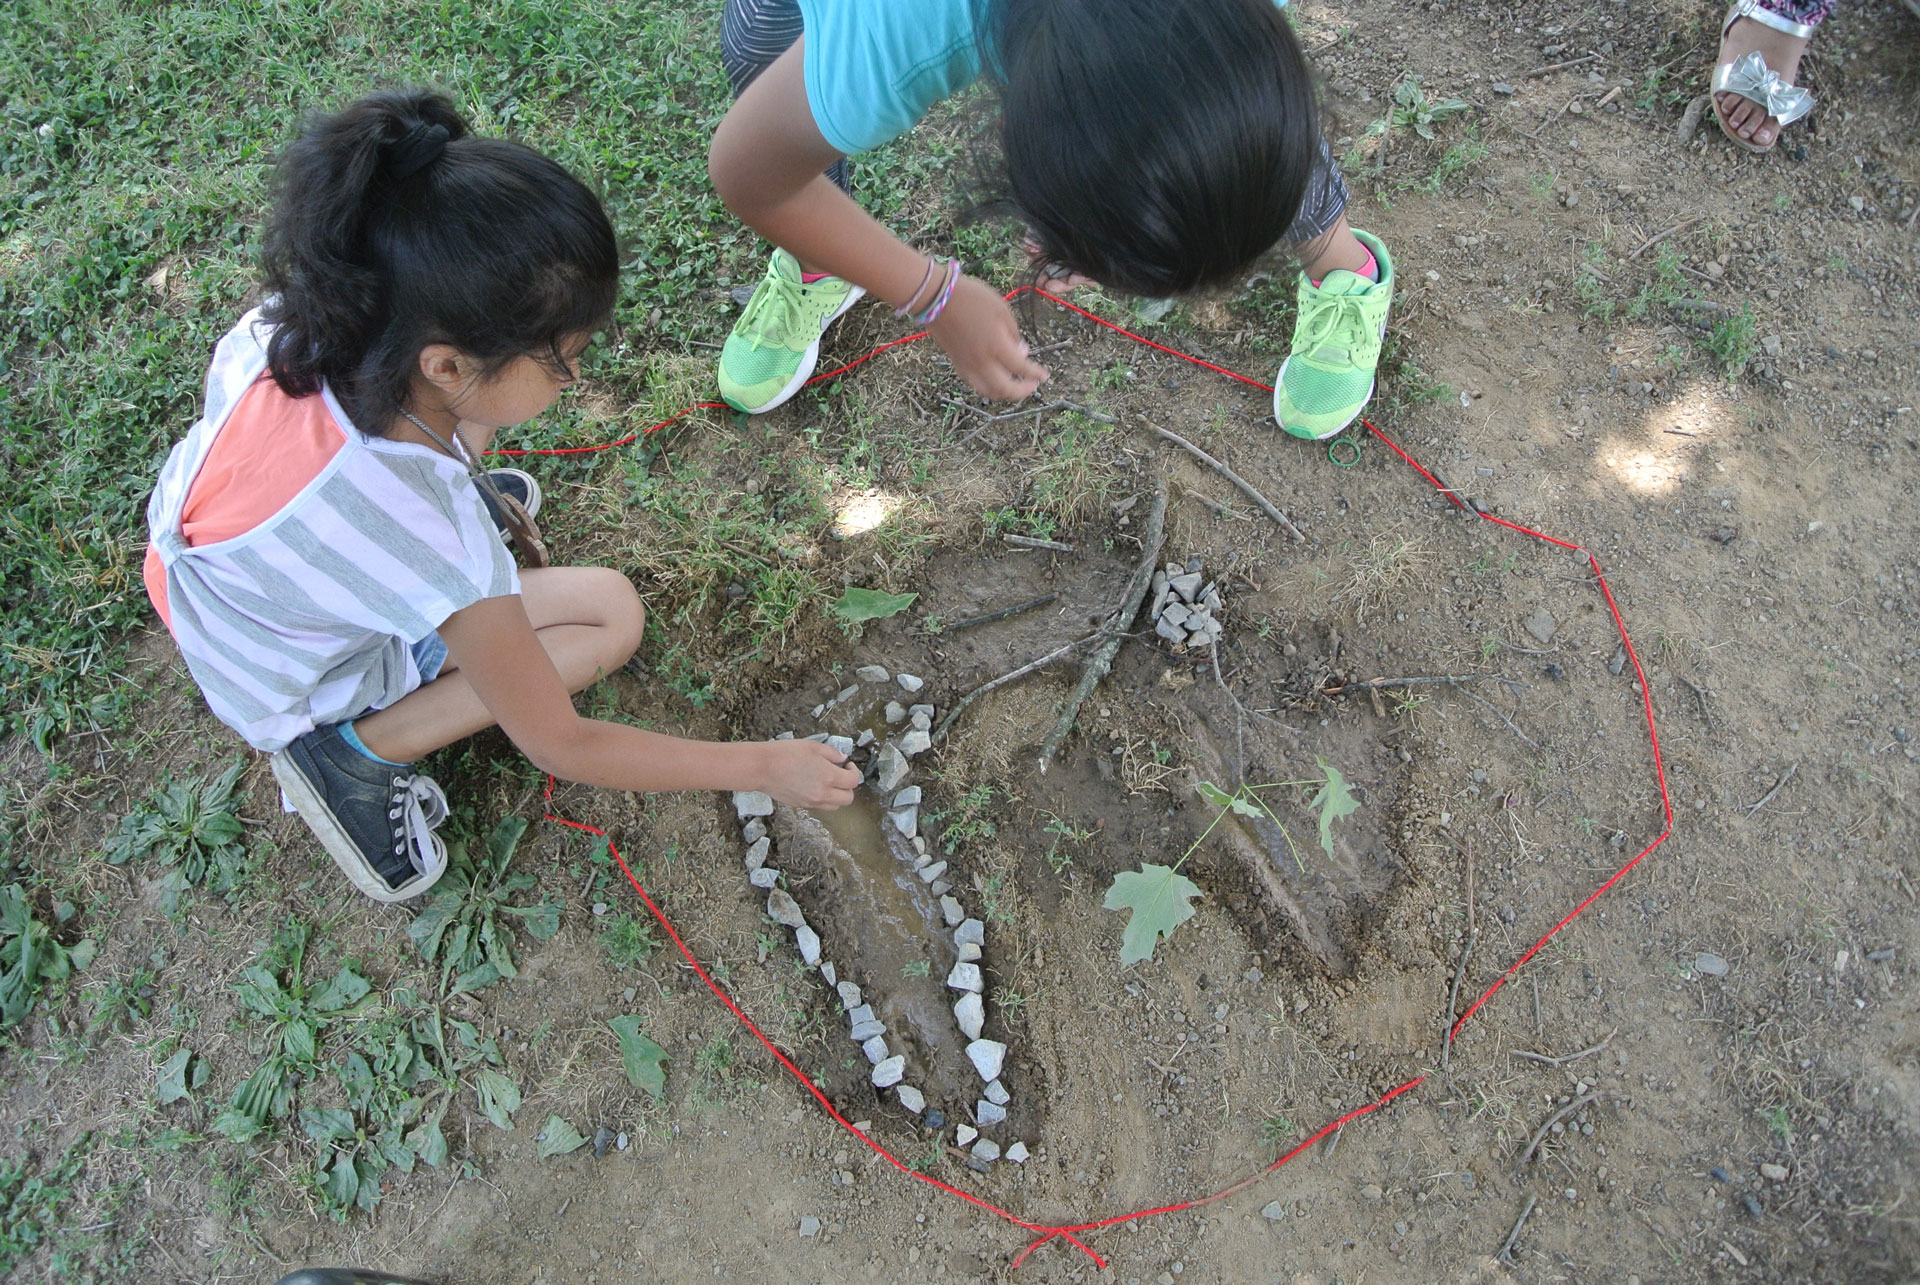 Students uses objects found in nature and a string to learn outside